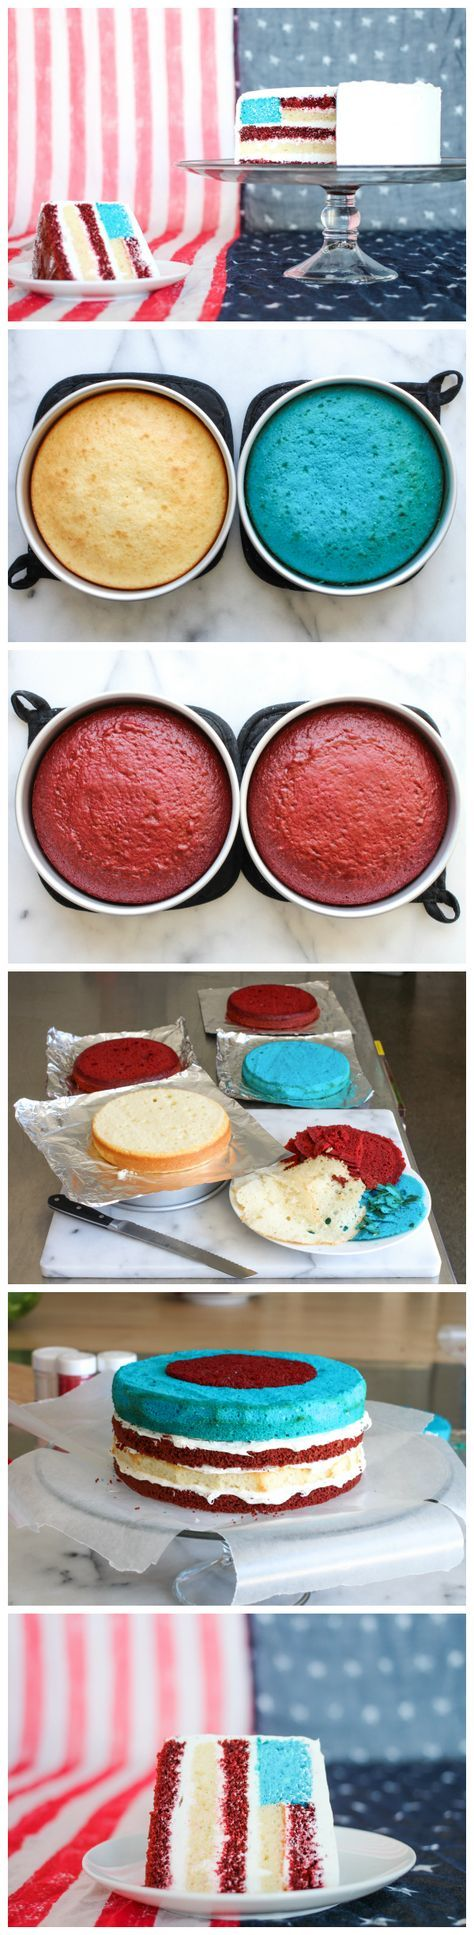 This American flag surprise cake is a great 4th of July dessert! Click for the full tutorial on Instructables. :D